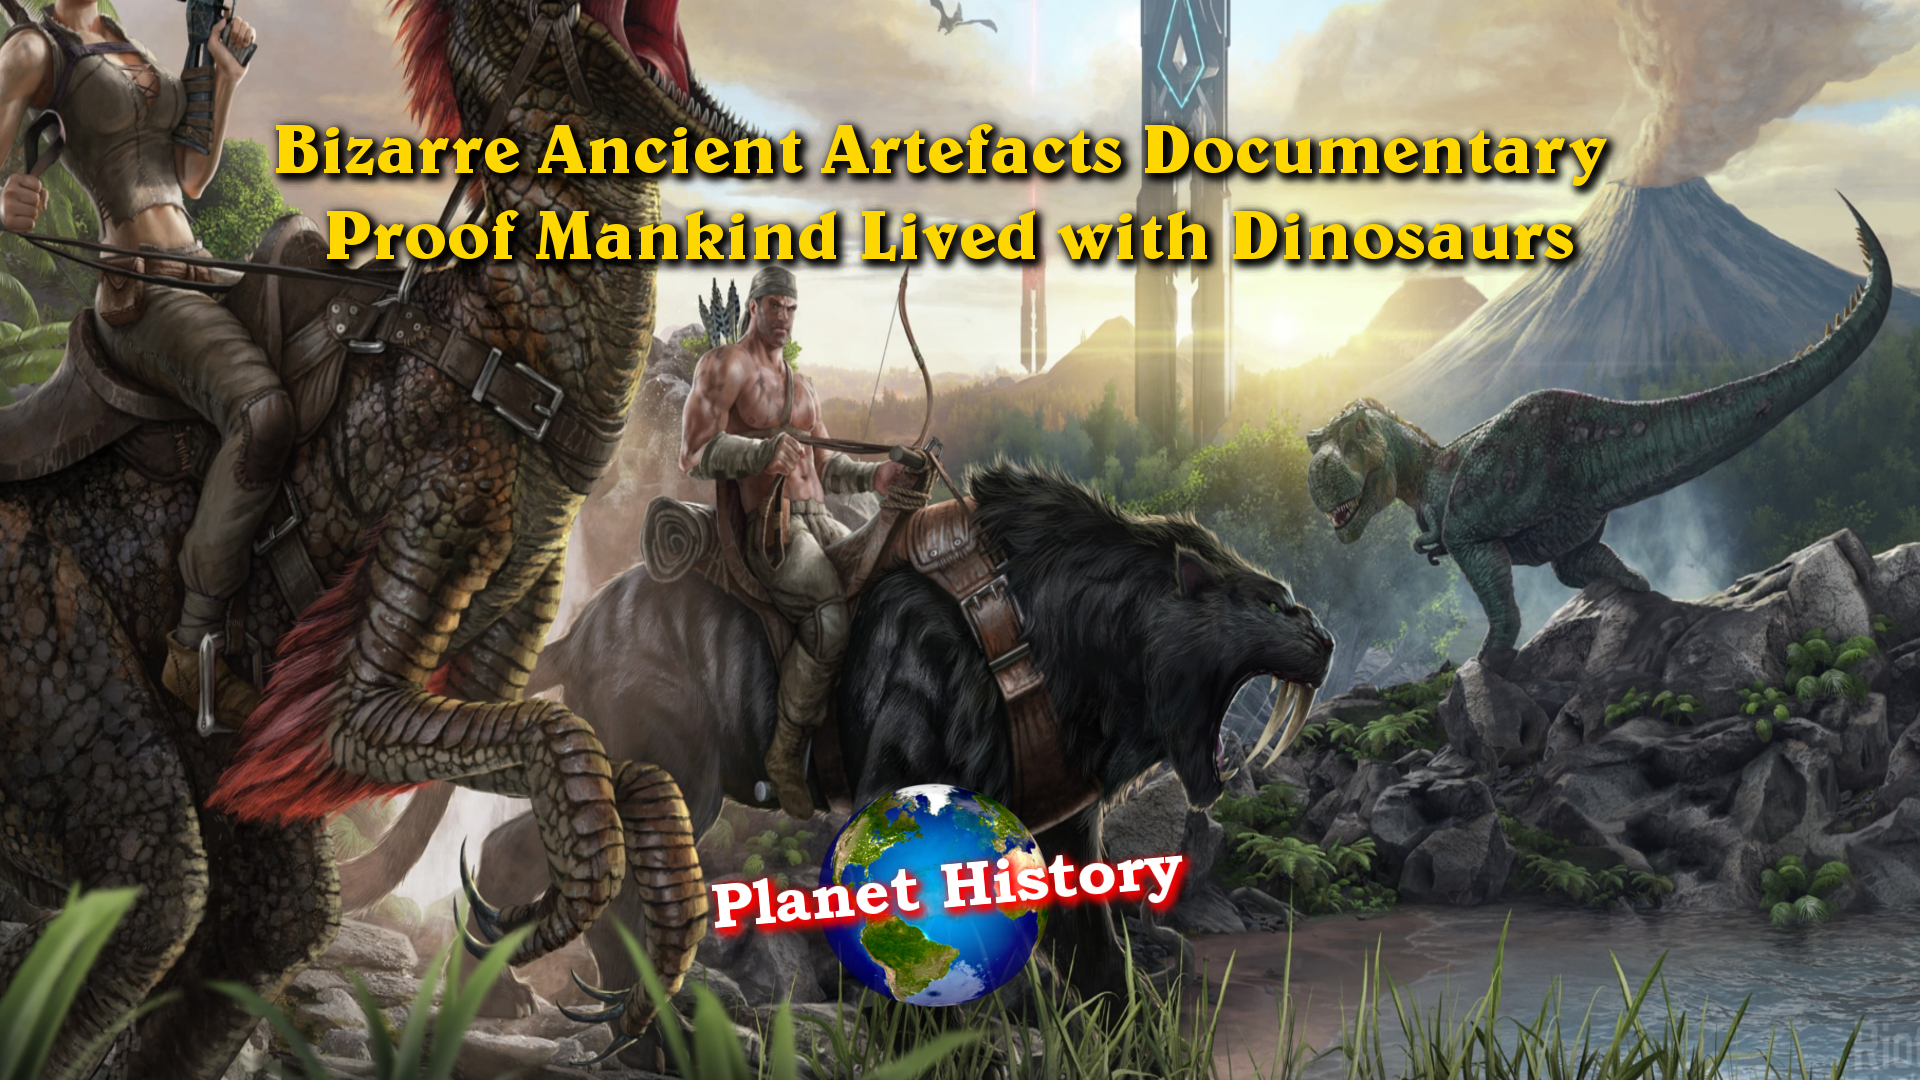 Bizarre Ancient Artefacts Documentary - Proof Mankind Lived with Dinosaurs